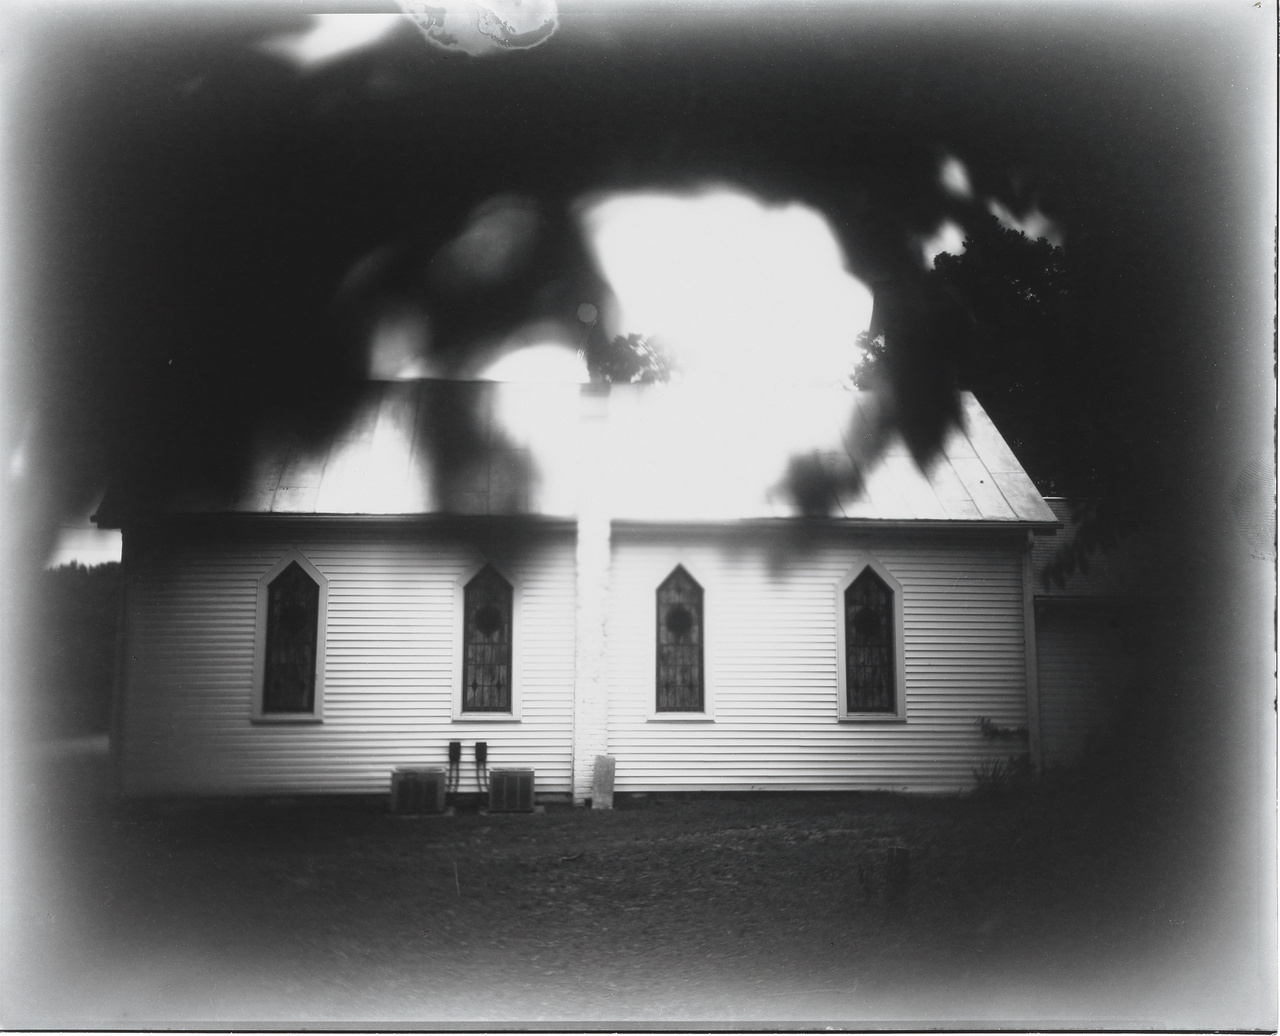 Beulah Baptist 01:01 2008-2016 gelatin silver print Collection of the artist